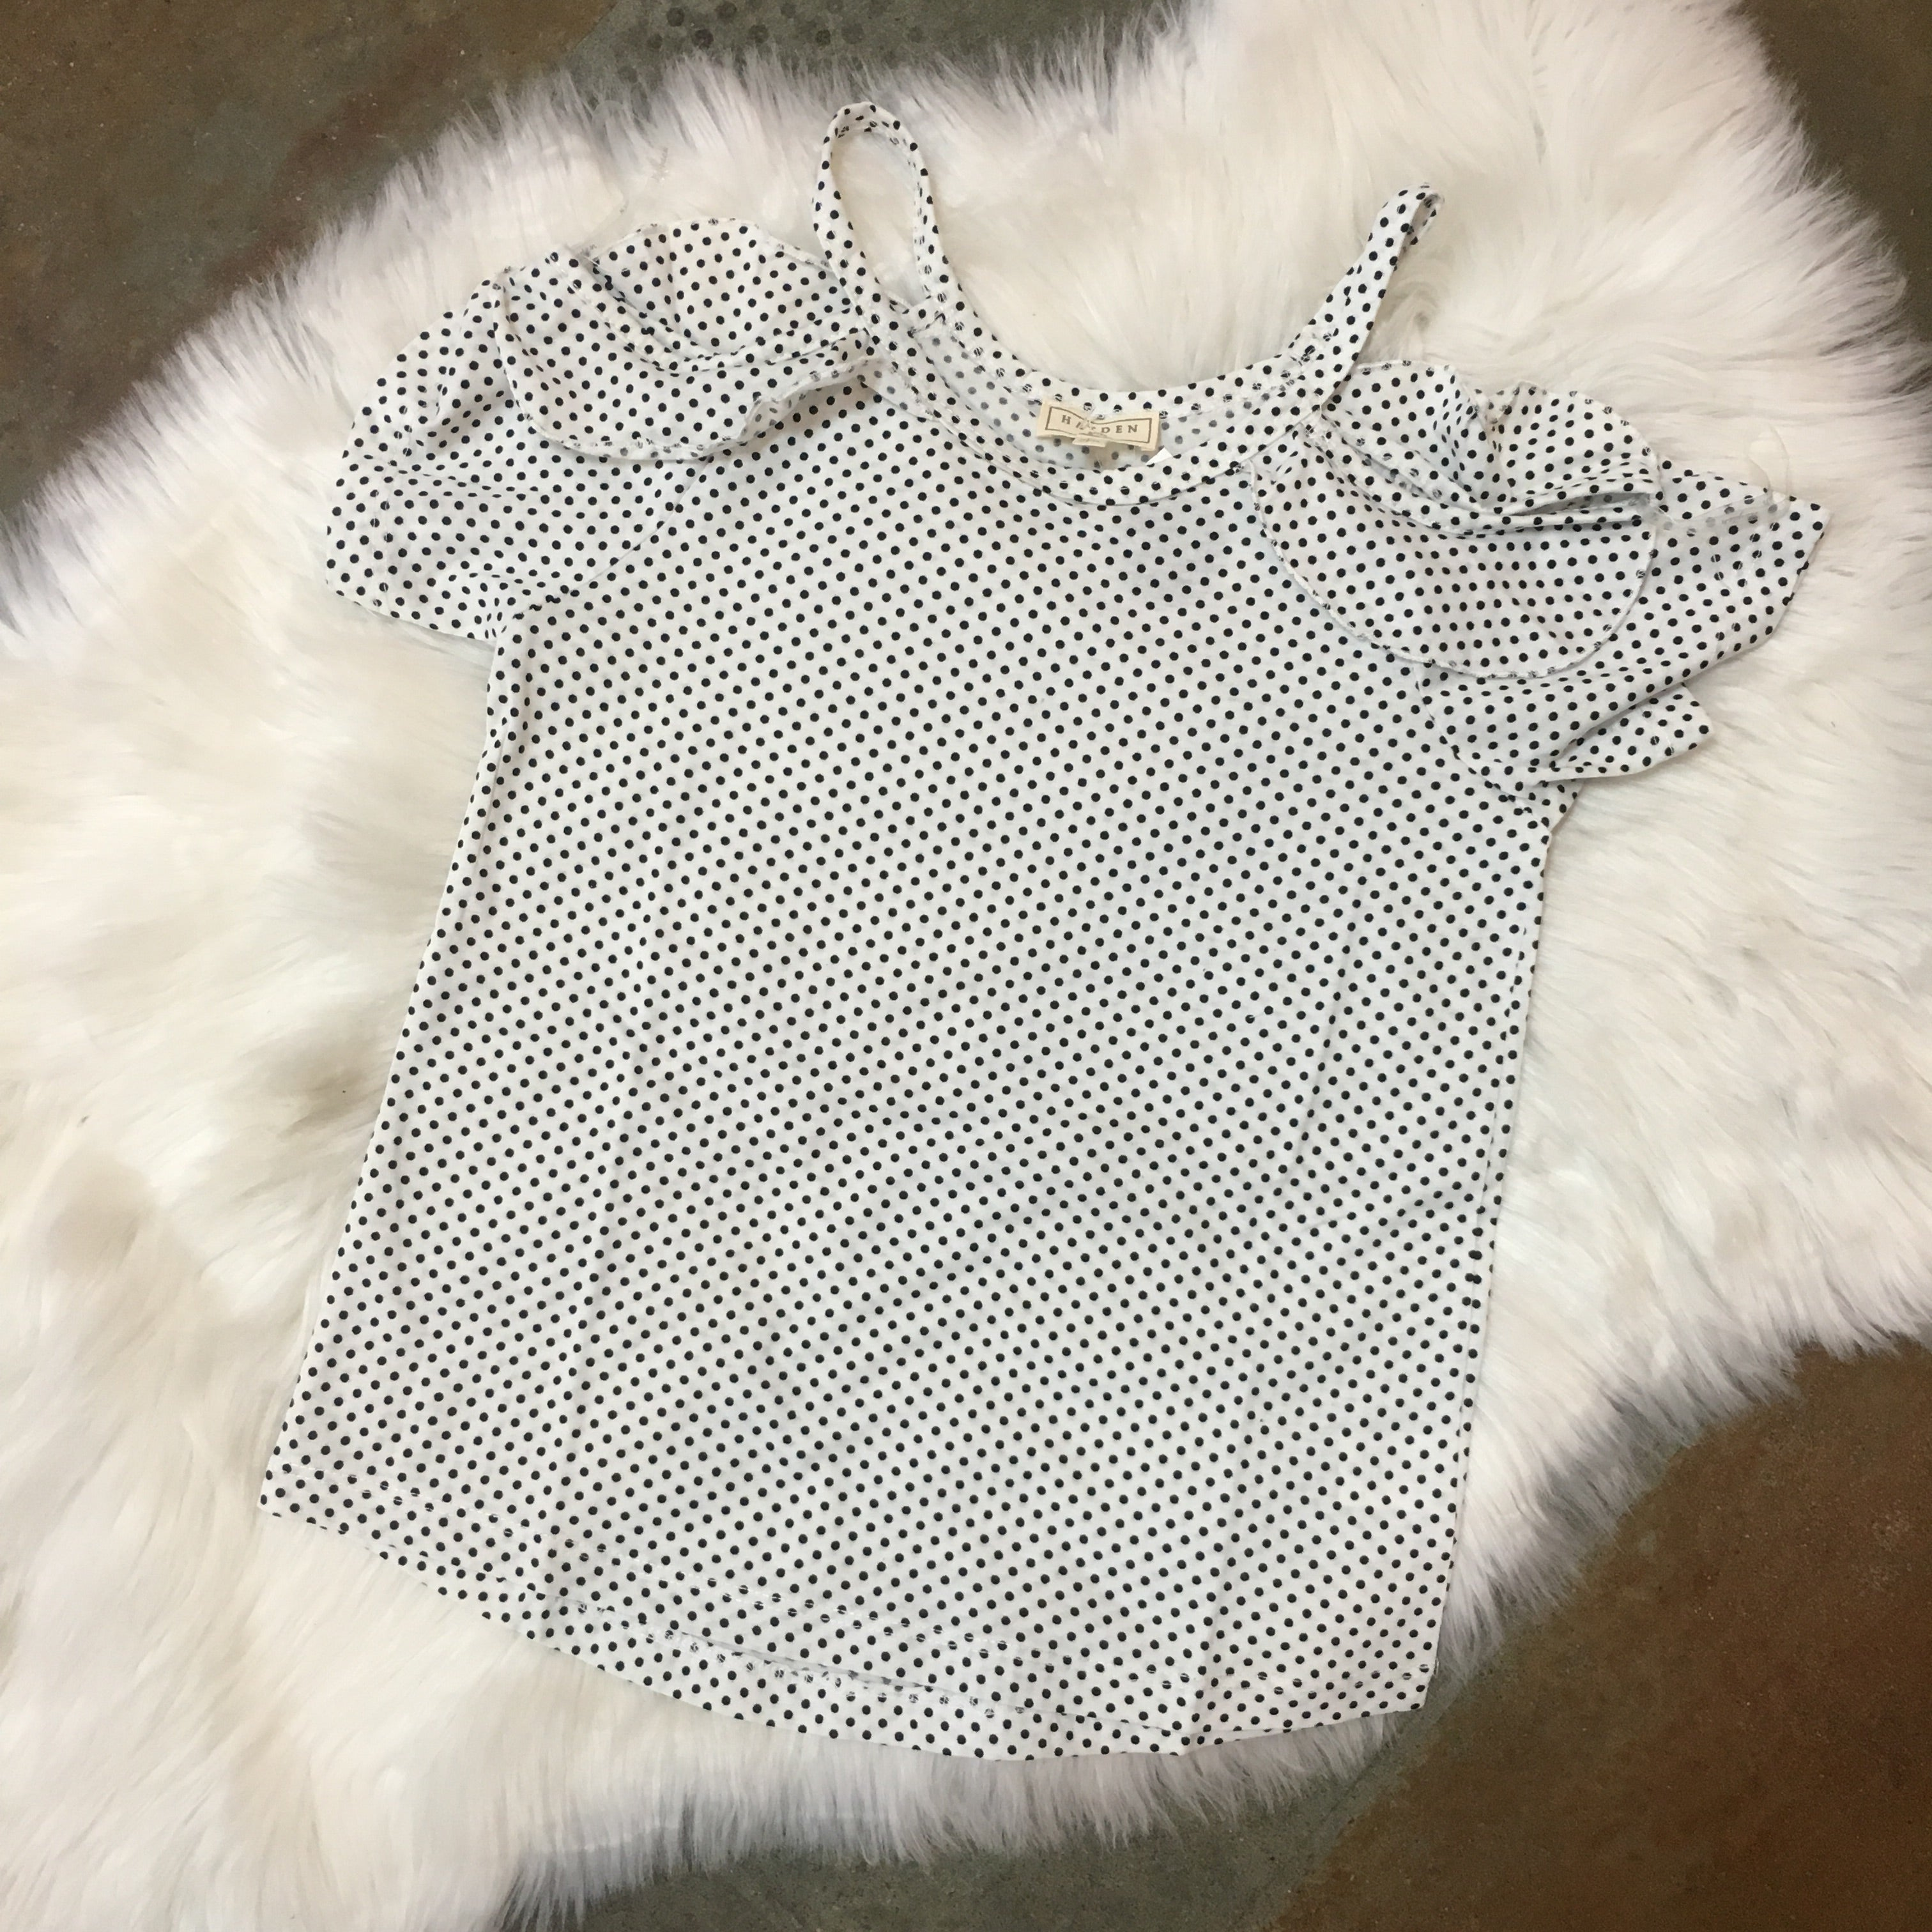 GIRLS POLKA DOT RUFFLED TUNIC